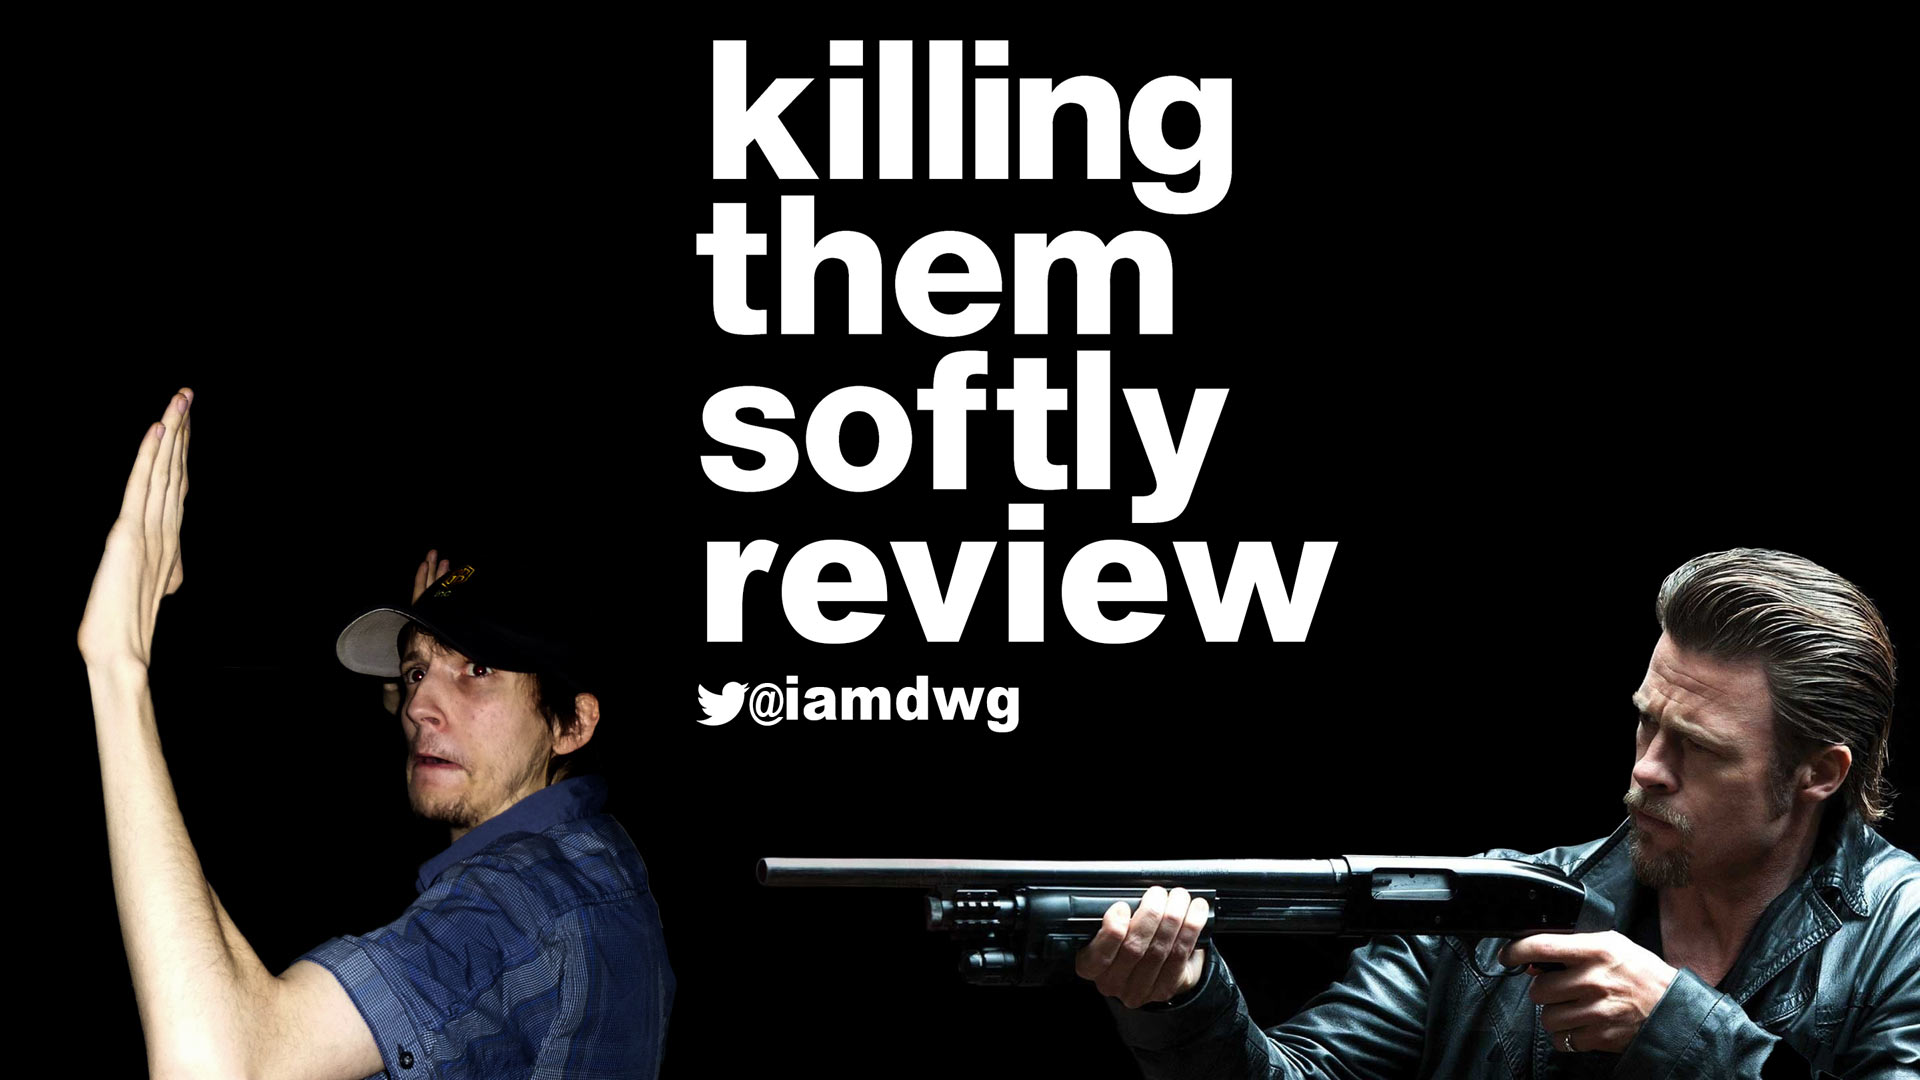 killing them softly Three dumb guys who think they're smart rob a mob protected card game, causing the local criminal economy to collapse brad pitt plays the enforcer hired to track them down and restore order.